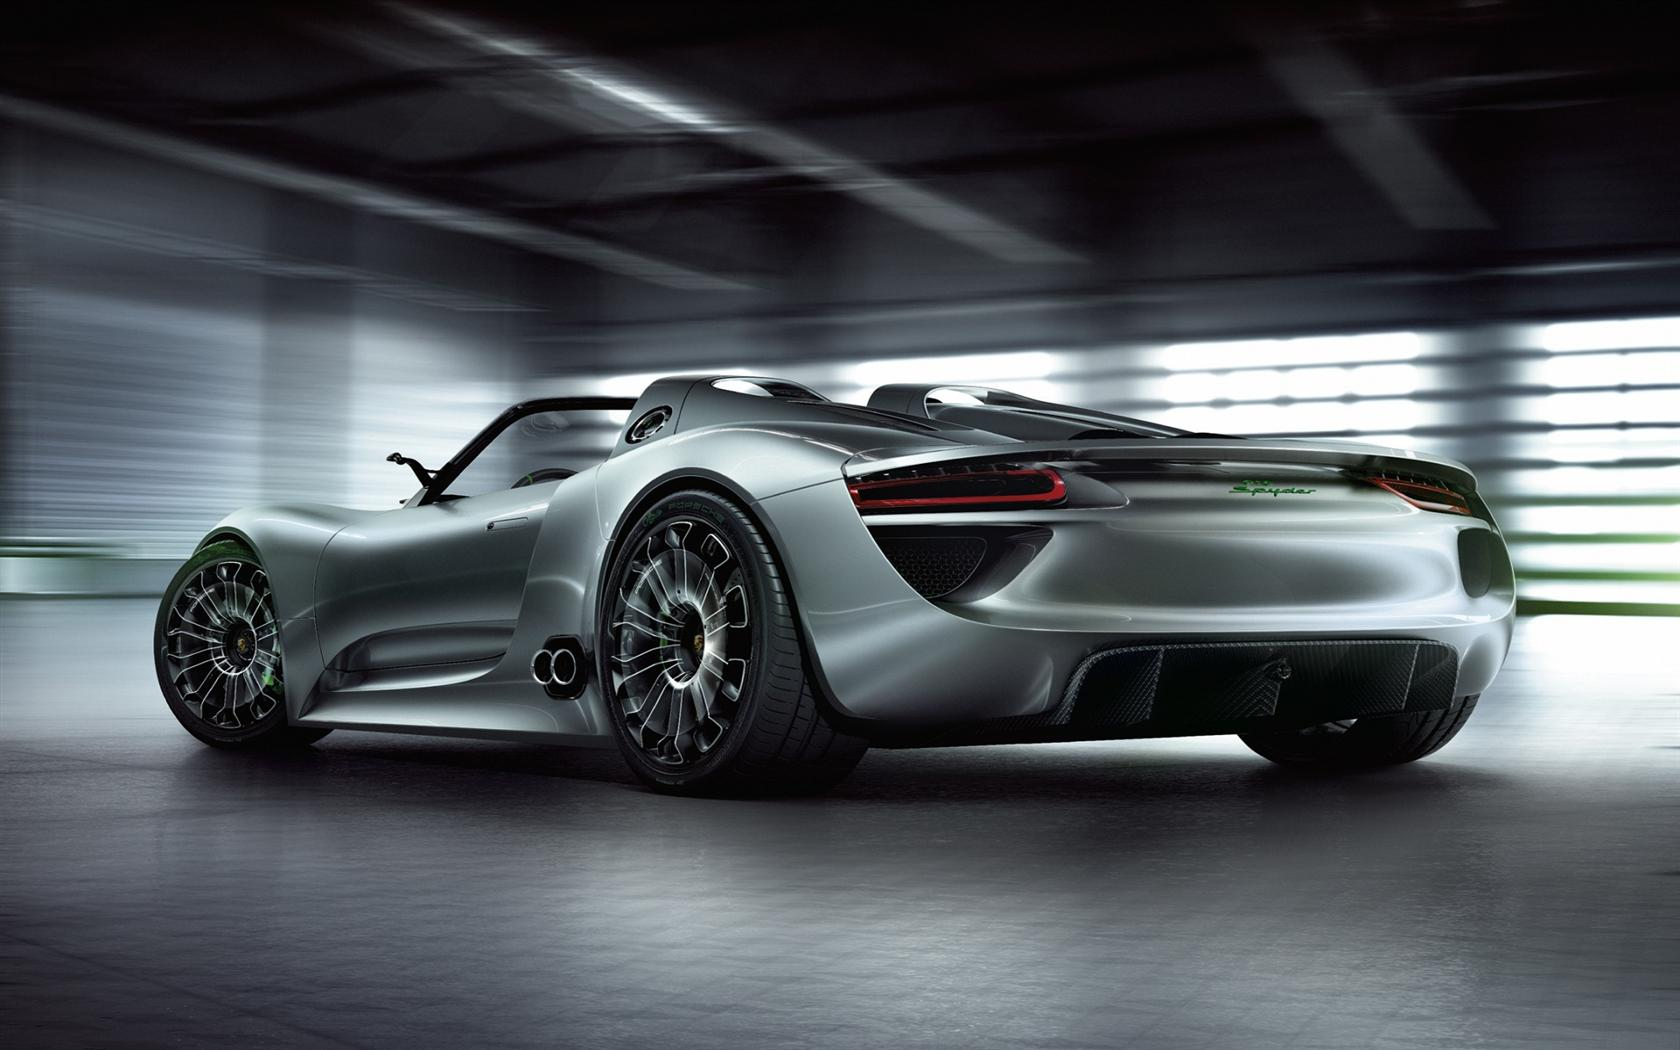 2010 porsche 918 spyder concept images photo 2010 porsche 918 spyder image 0. Black Bedroom Furniture Sets. Home Design Ideas